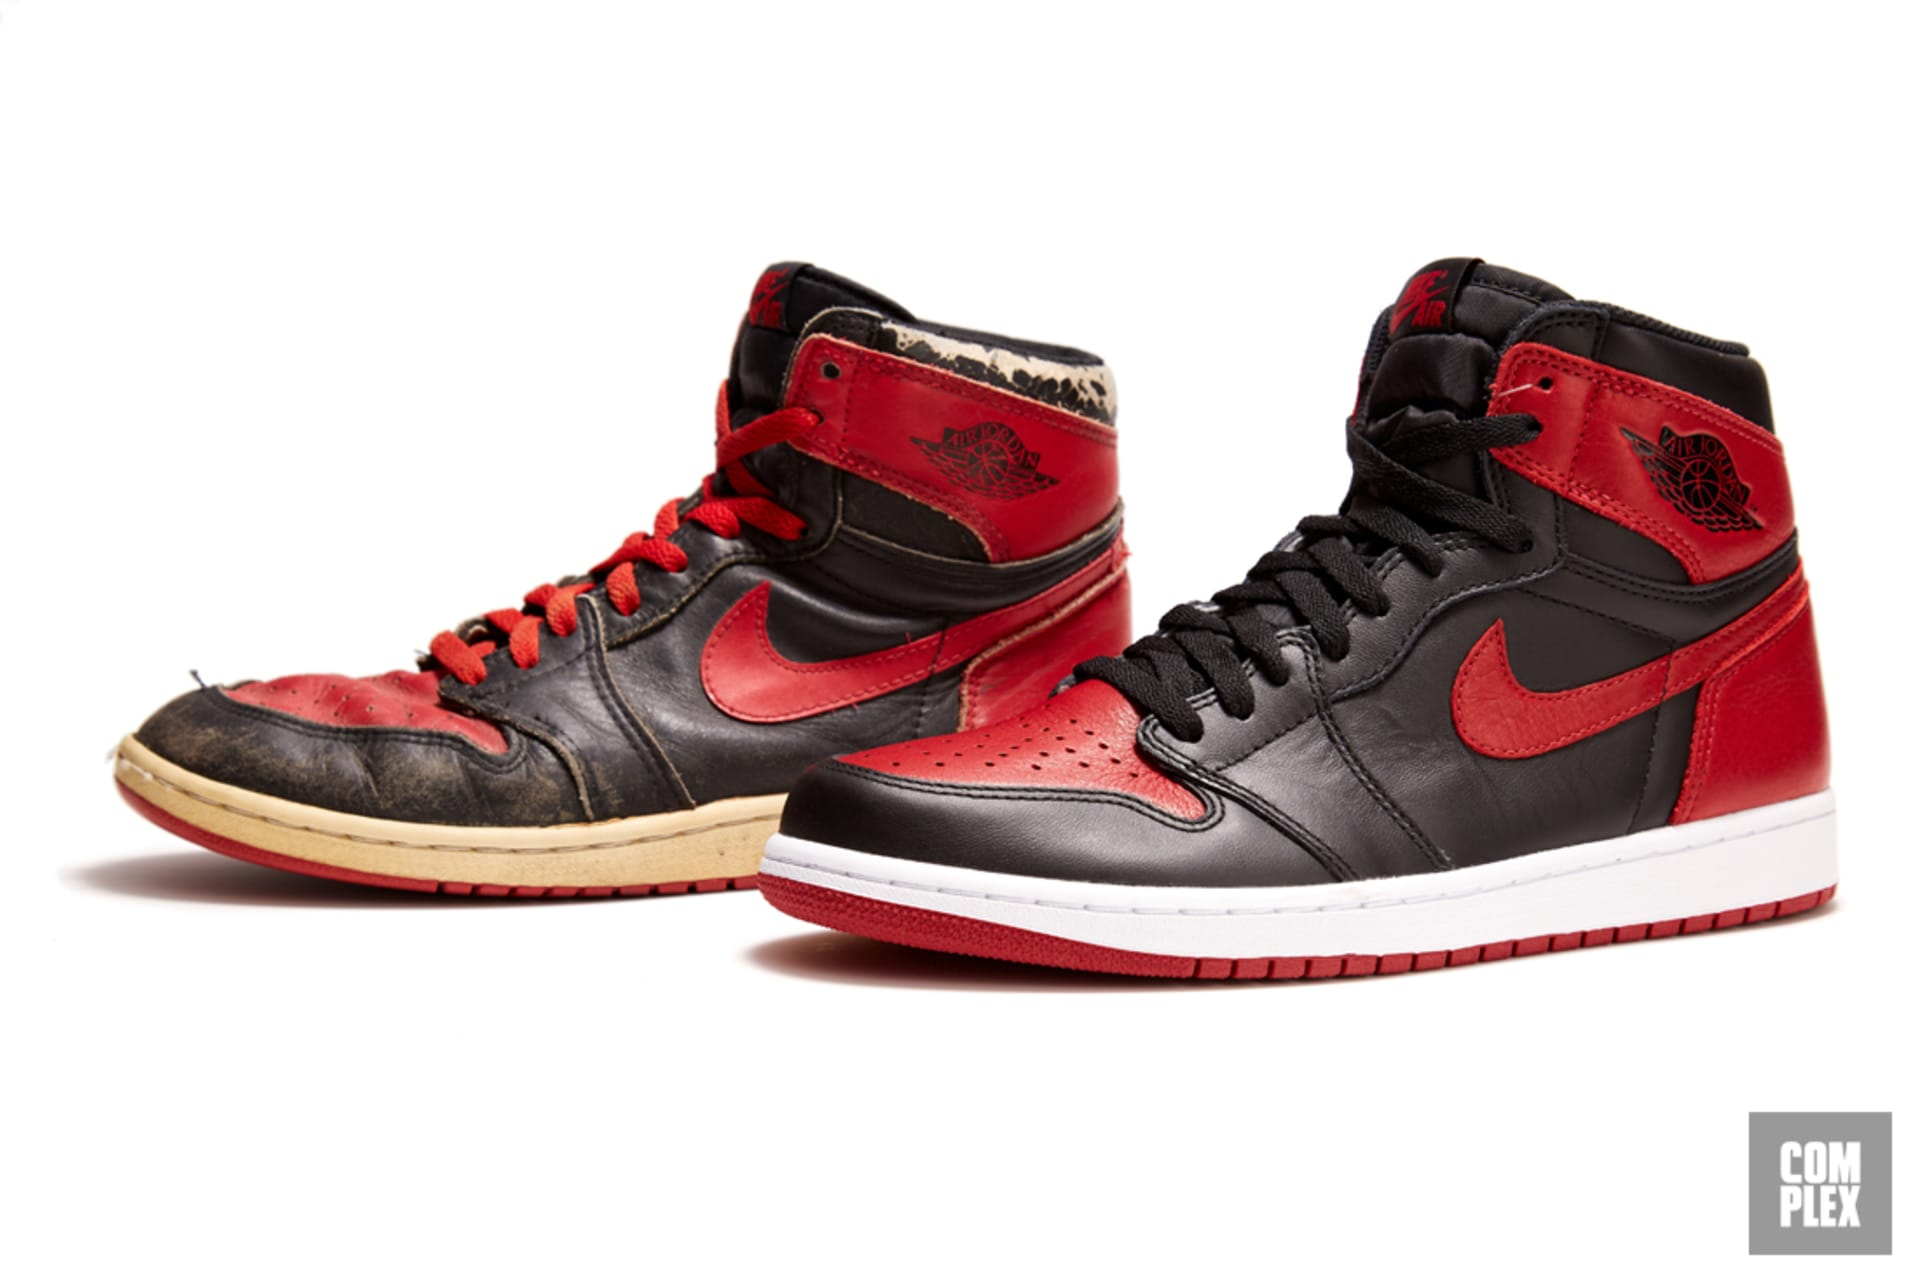 baf558dbb512 The Evolution of the Black and Red Air Jordan 1